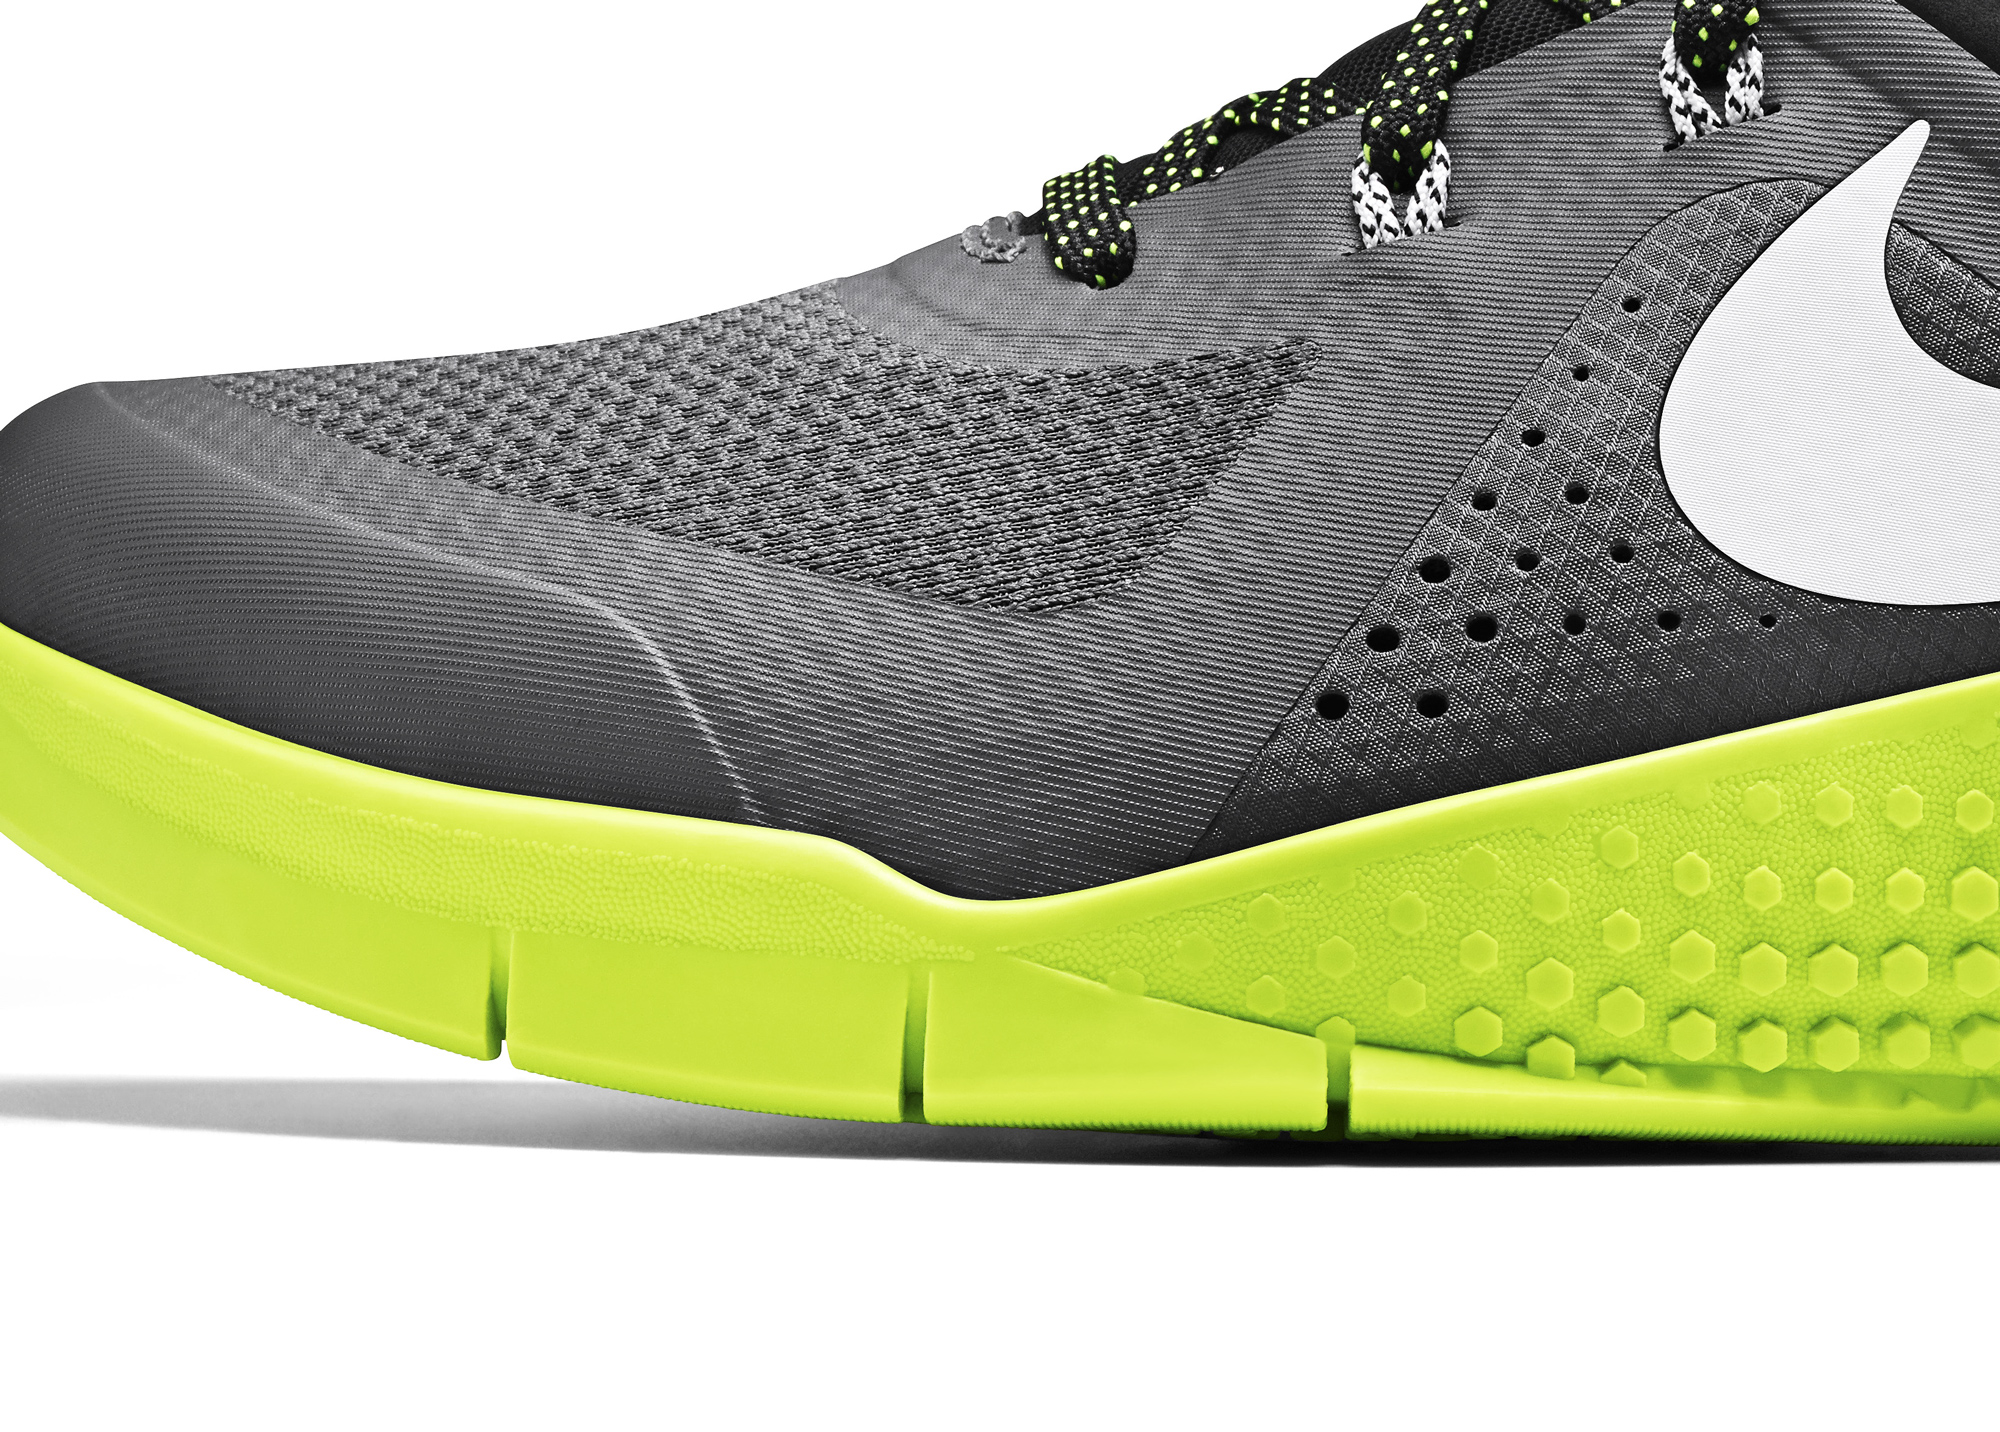 Nike Training Introduces the Much-Anticipated Nike MetCon 1 - Nike